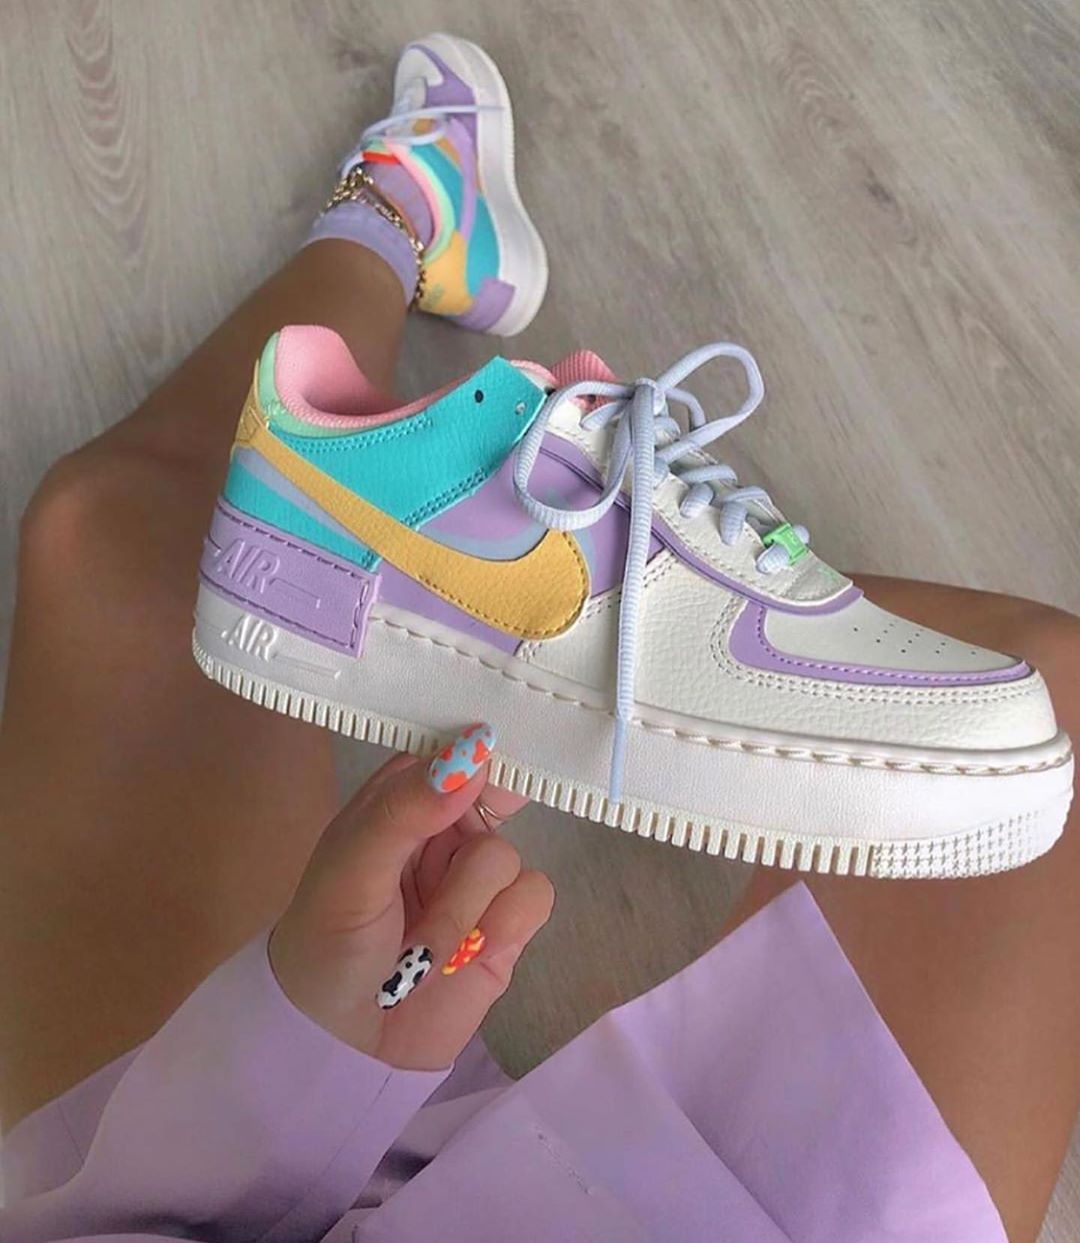 Pin by Lydia Marshall on s h o e s in 2020 | Nike shoes air ...